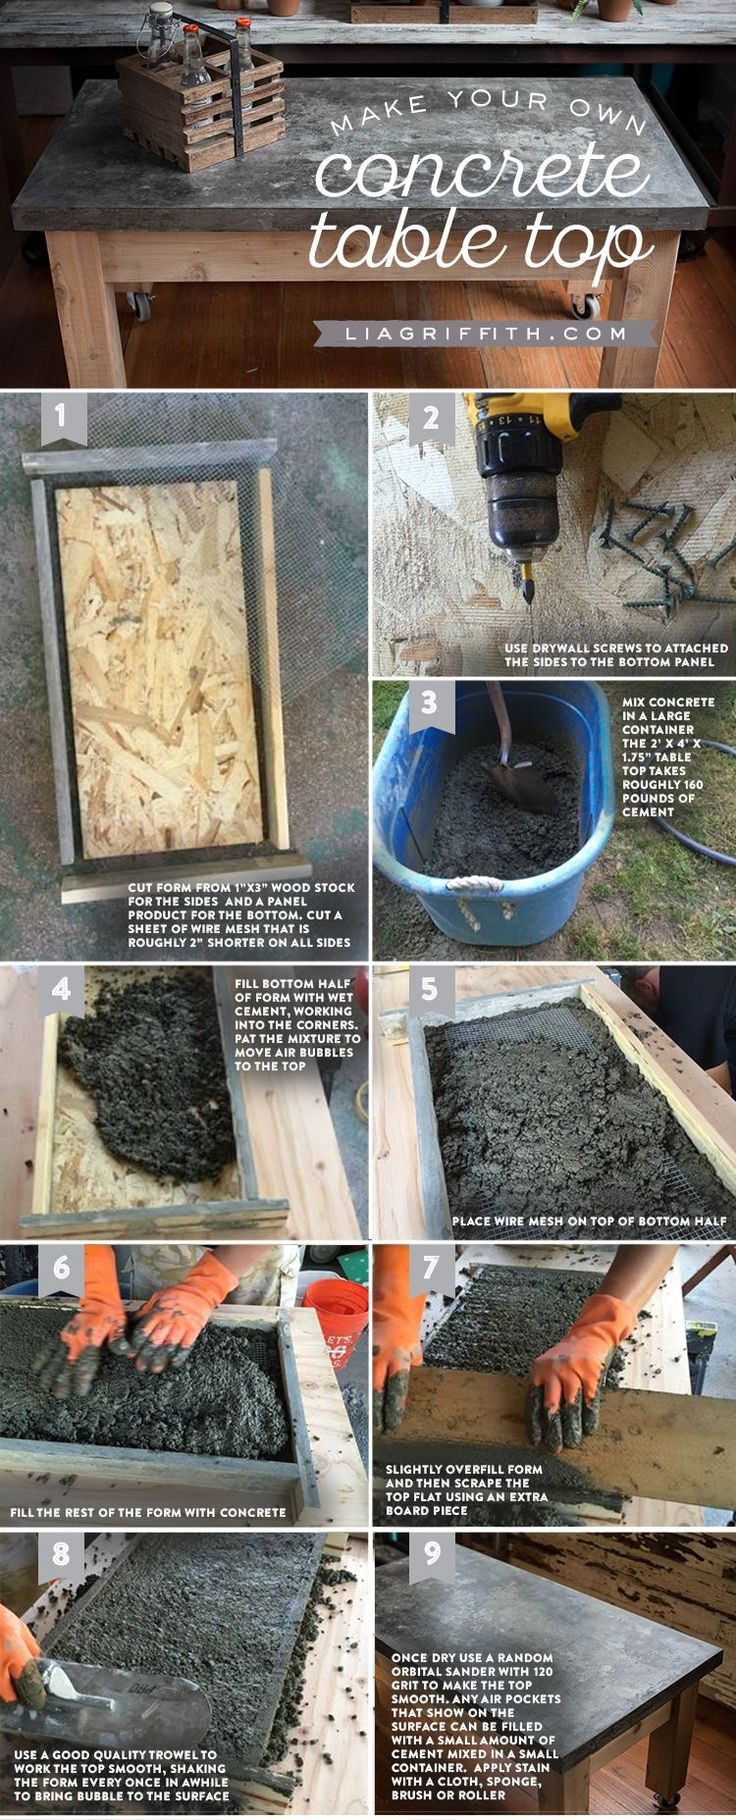 Make a Concrete Table Top